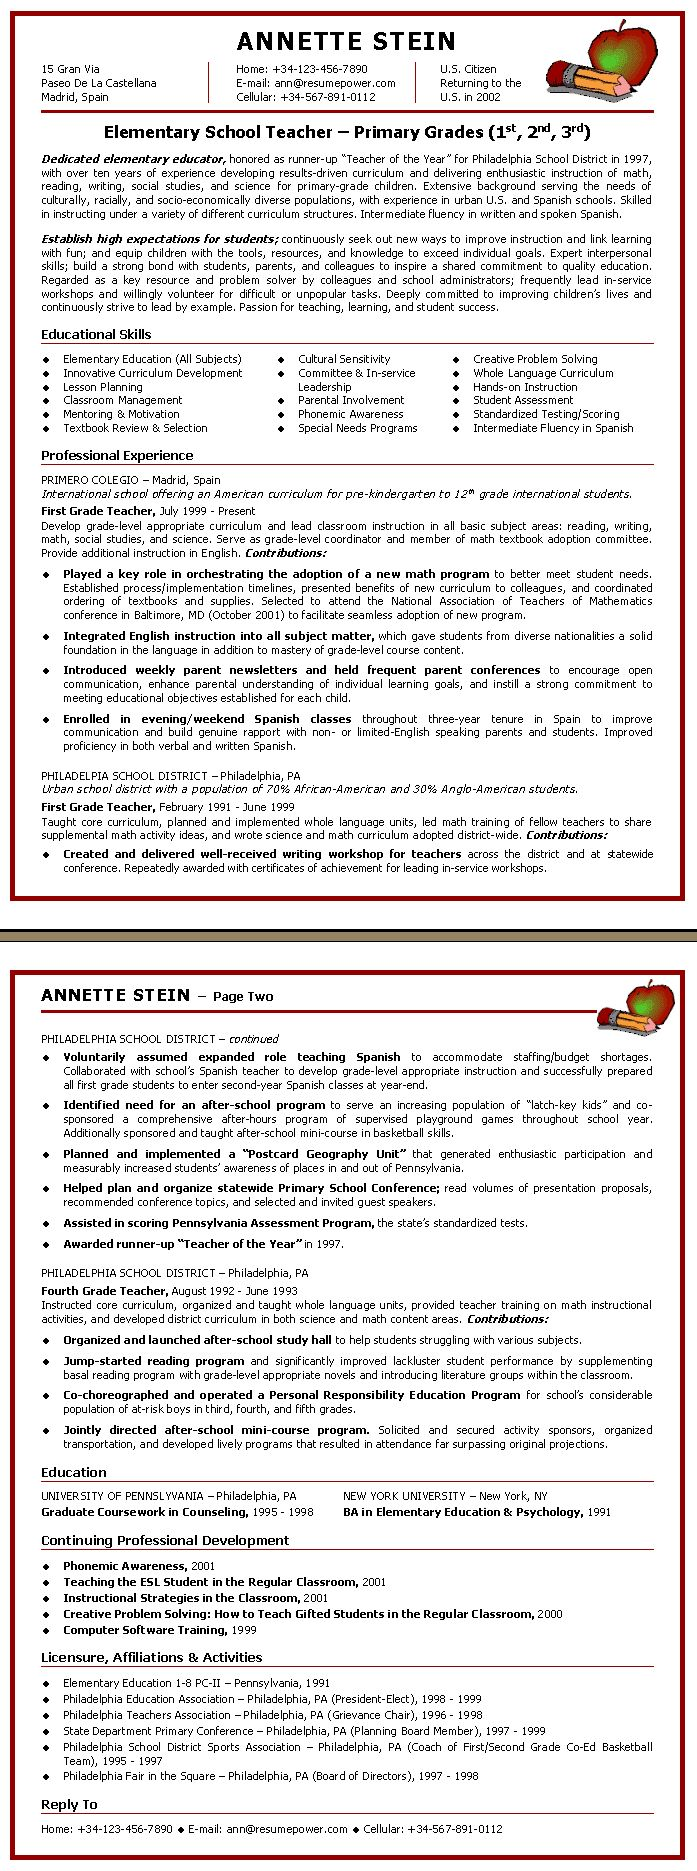 teacher resume elementary school teacher sample resume - Resume Templates For Educators